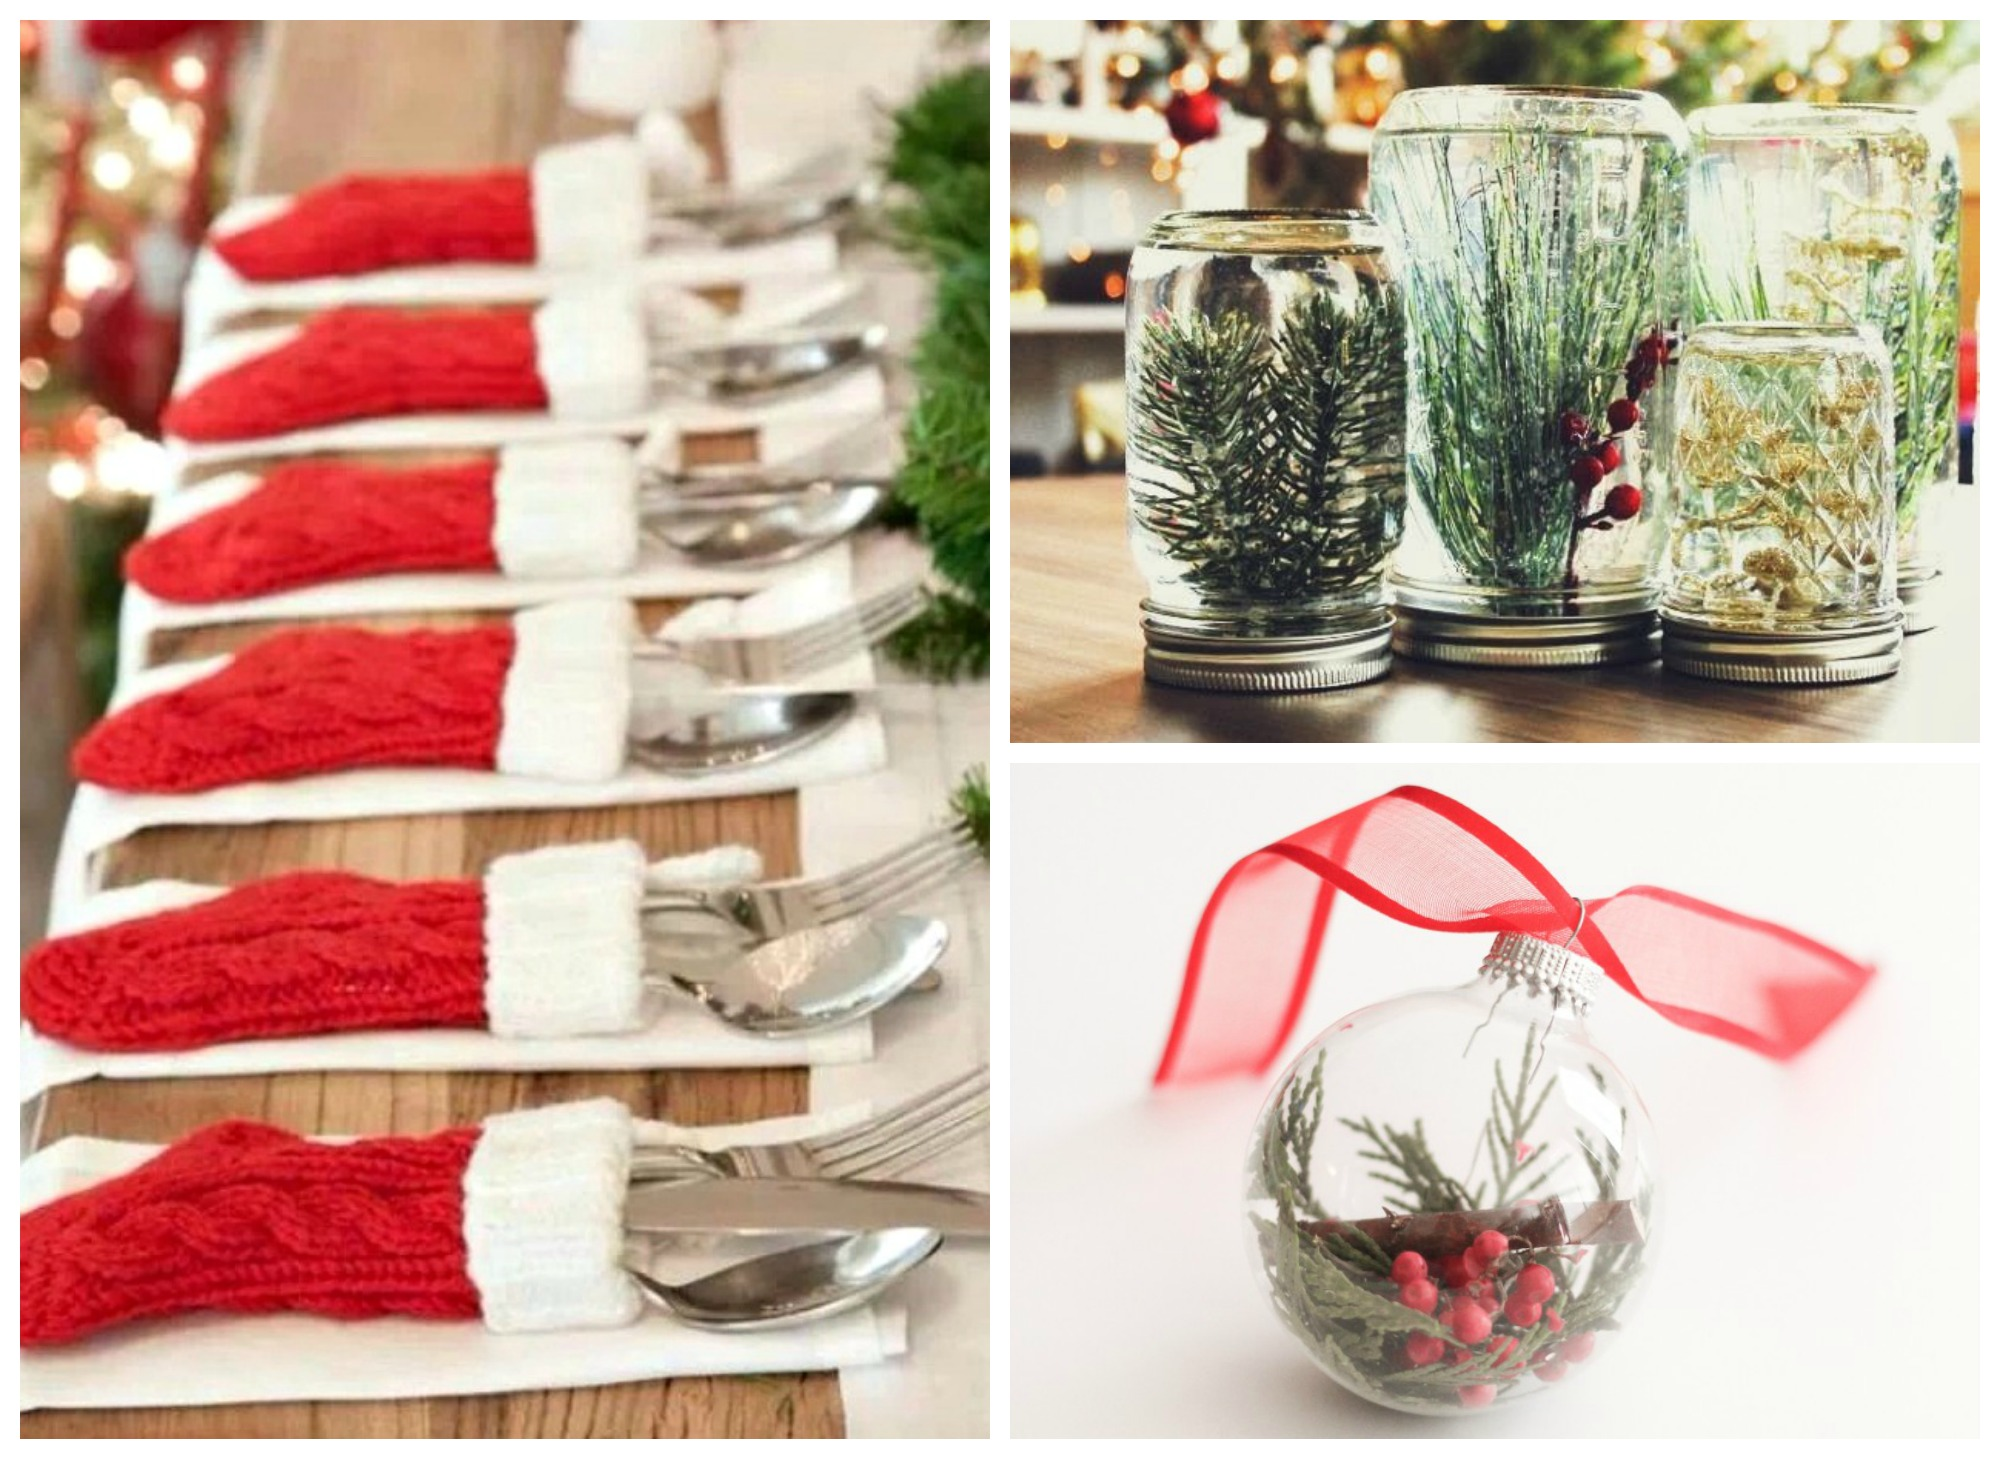 10 dollar store diy christmas decorations that are beyond easy - Cheap Diy Christmas Decorations